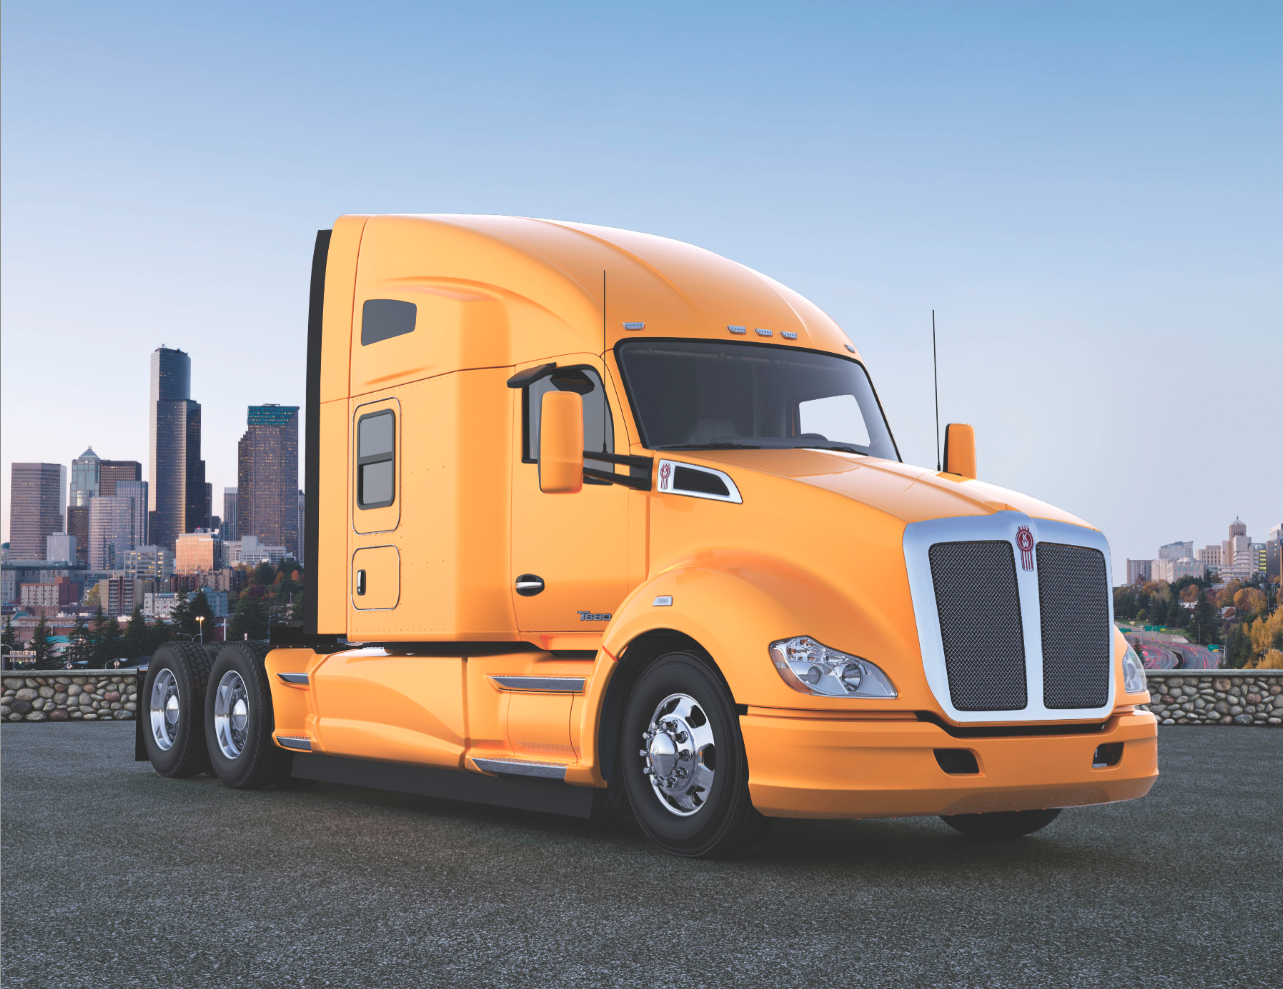 A growing family: Kenworth T680 test drive